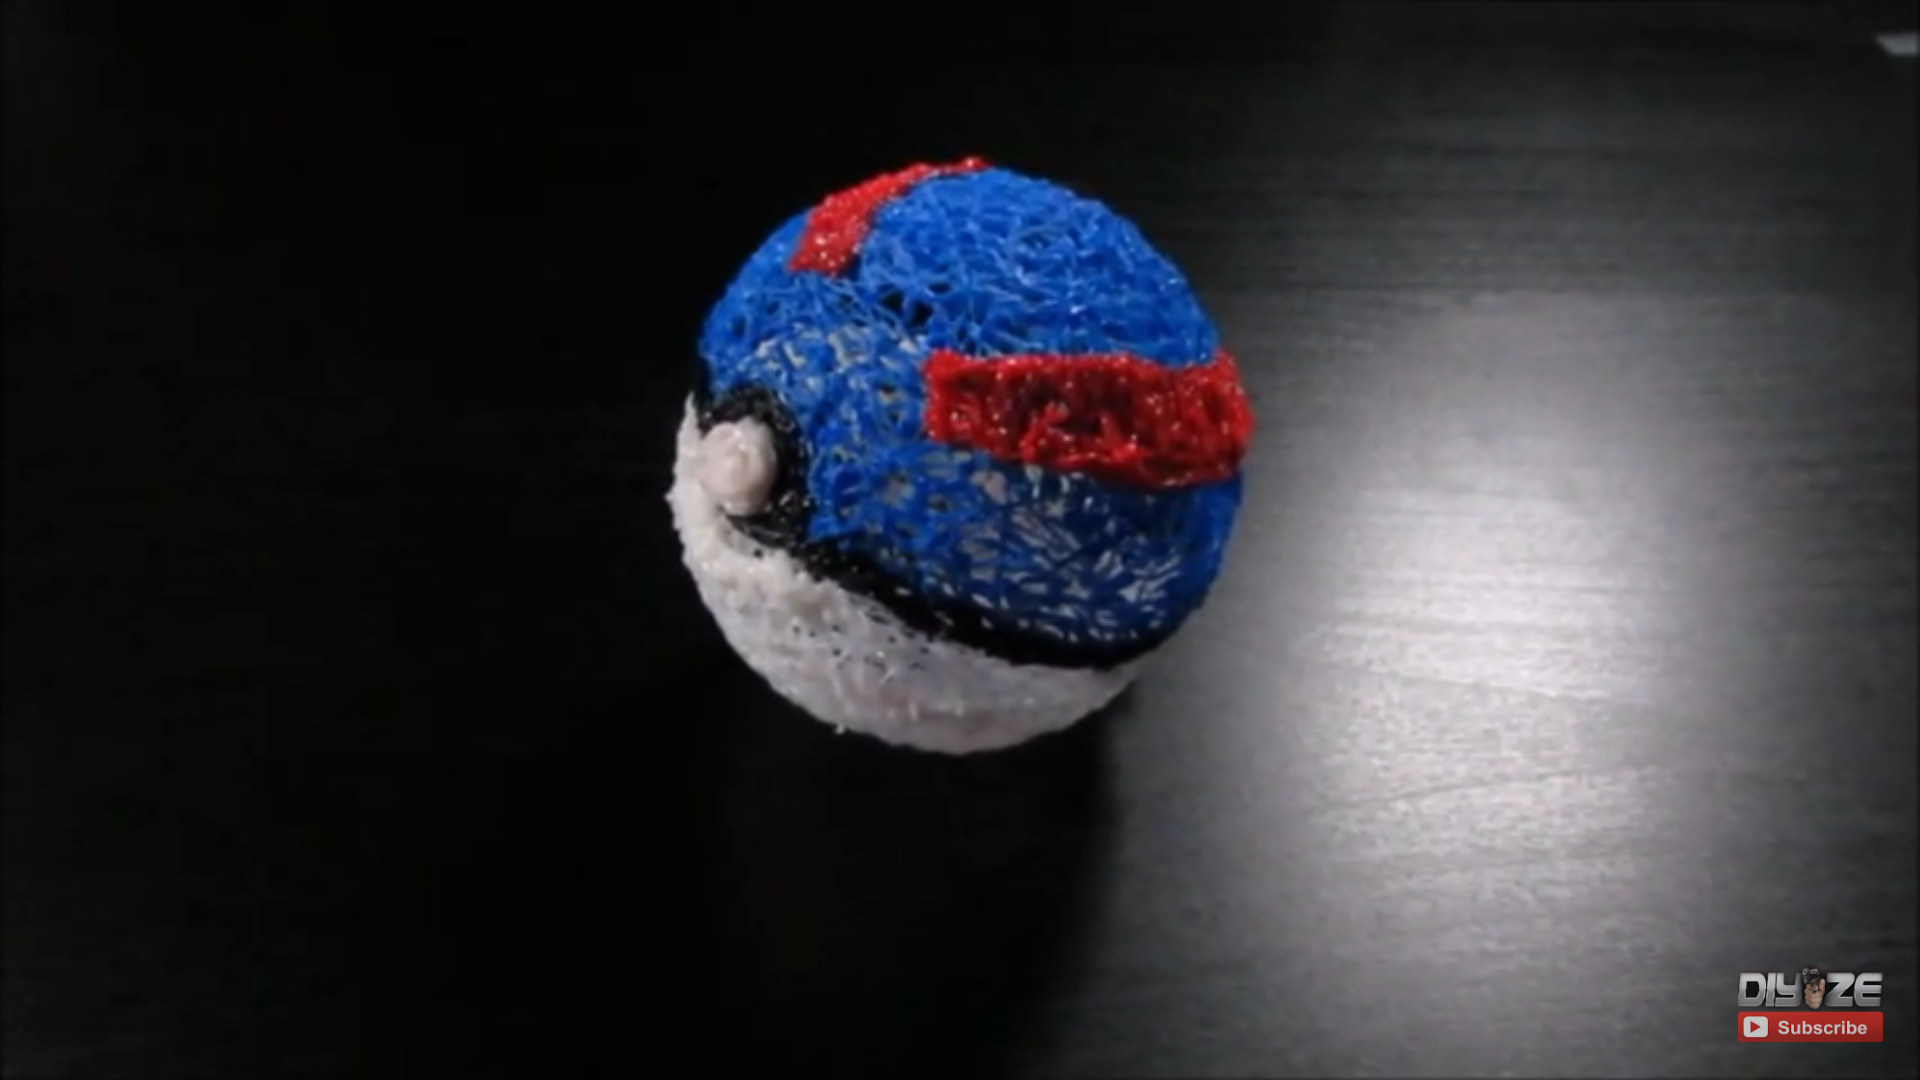 DIY Pokeball using 3D pen